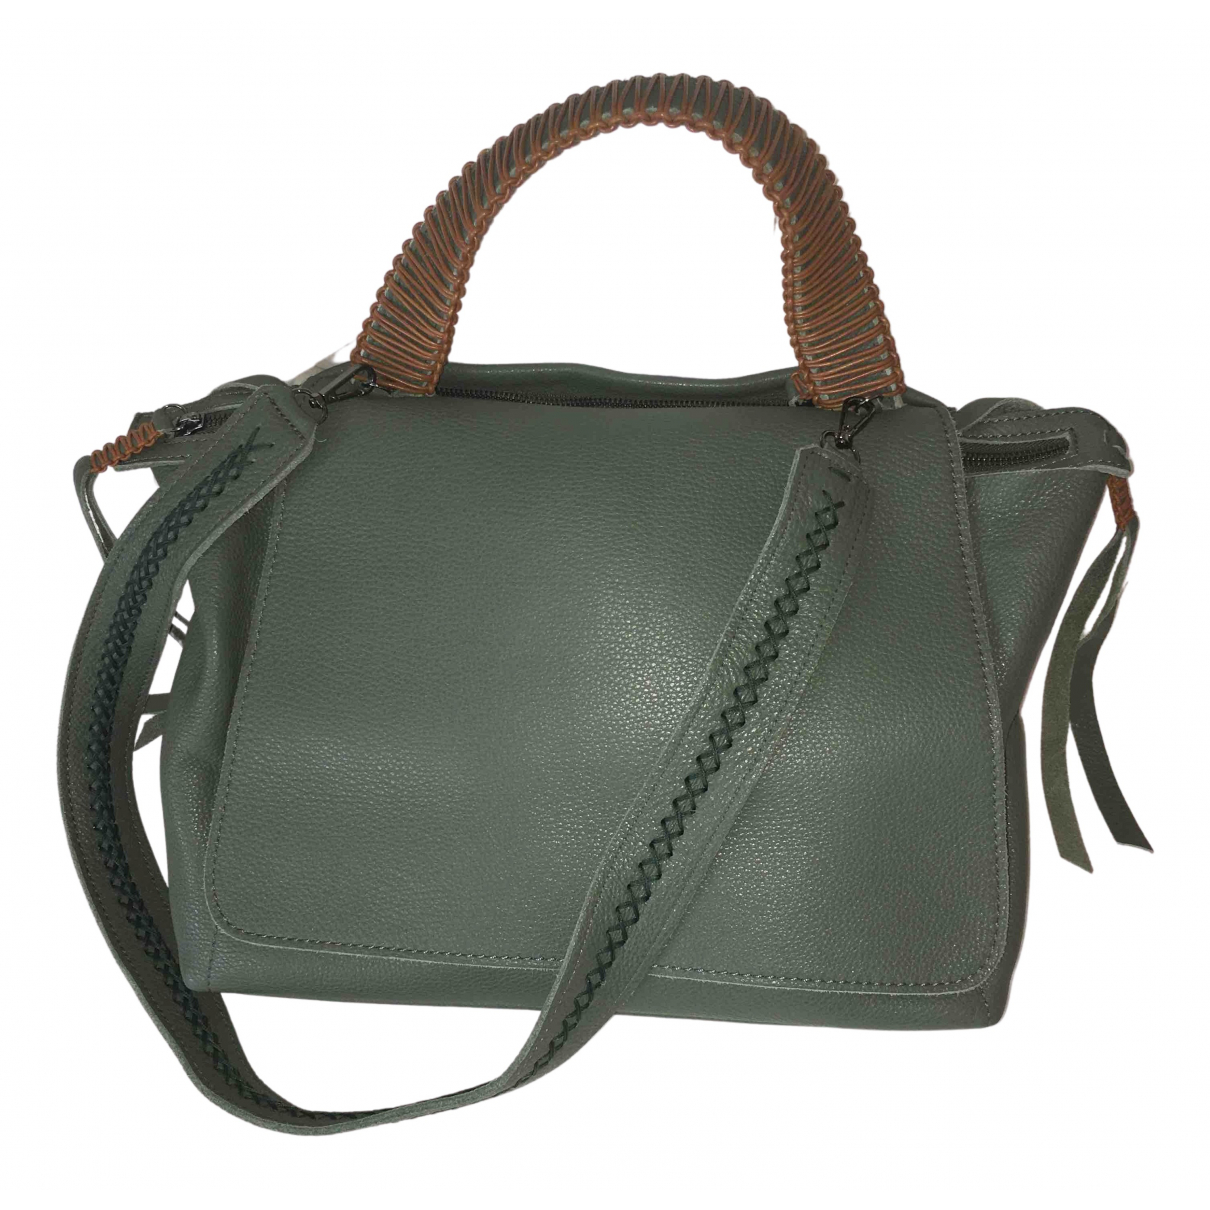 Callista Crafts N Green Leather handbag for Women N